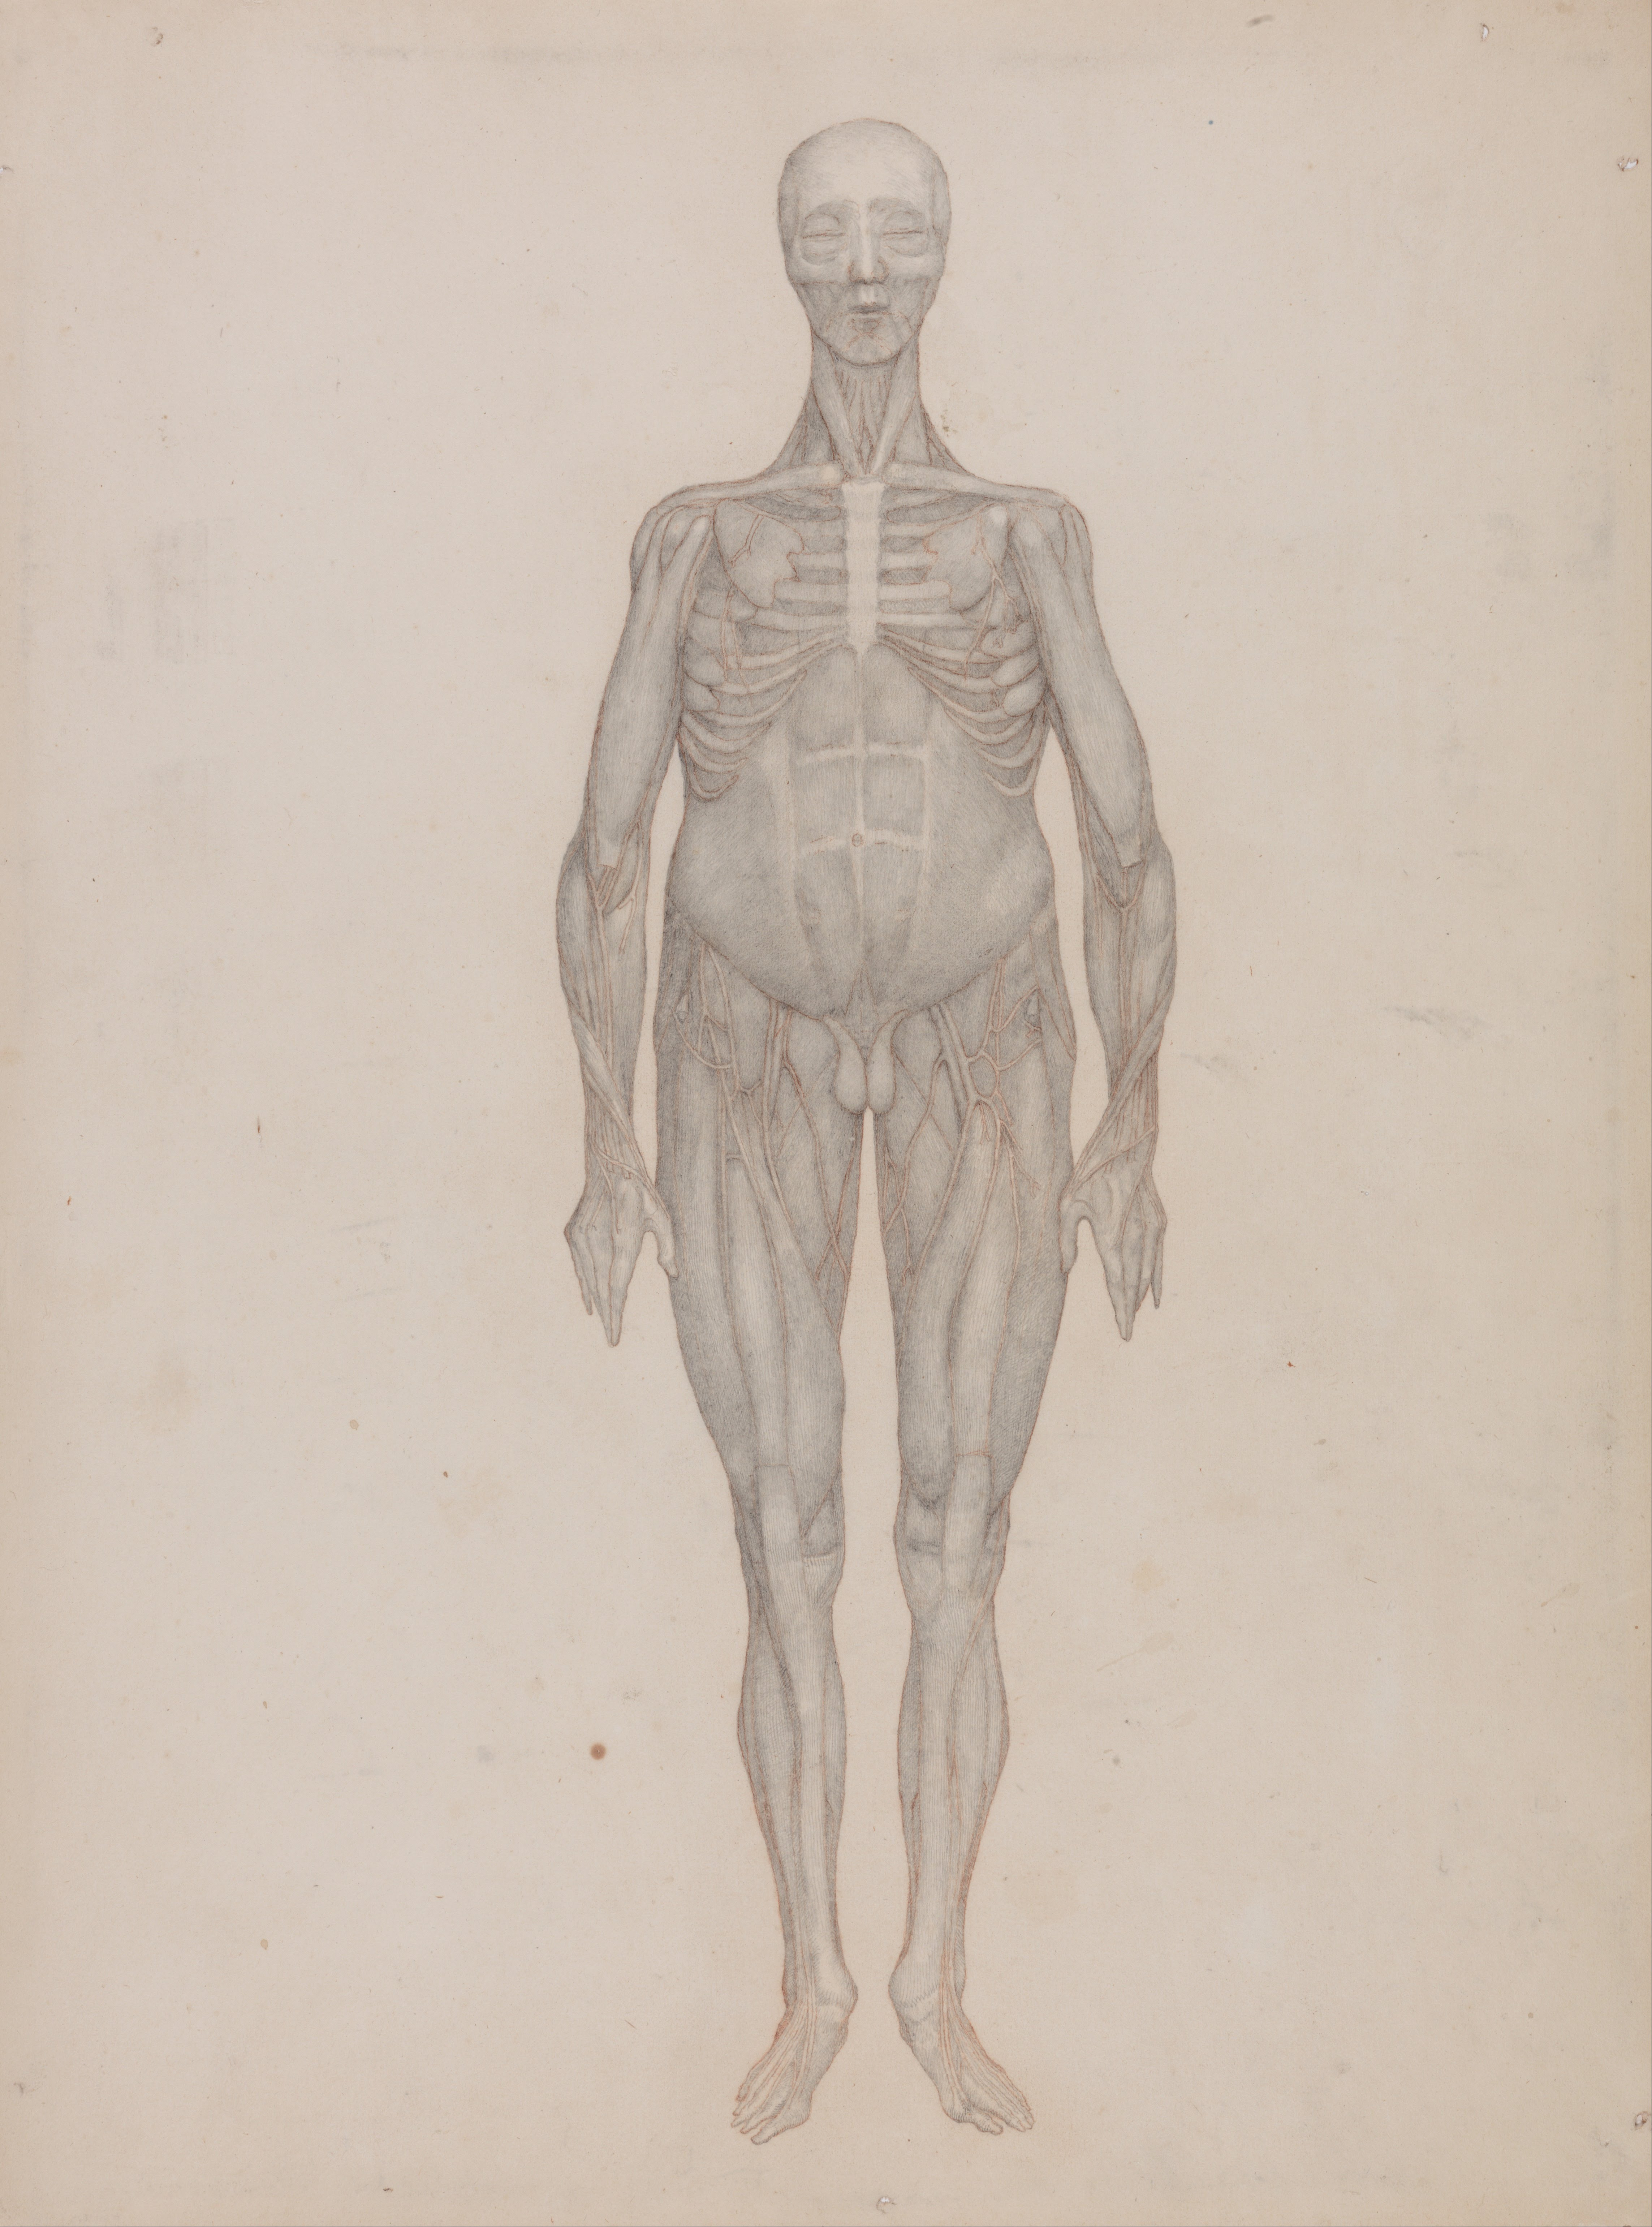 George_Stubbs_-_A_Comparative_Anatomical_Exposition_of_the_Structure_of_the_Human_Body_with_That_of_a_Tiger_and_a_Co..._-_Google_Art_Project